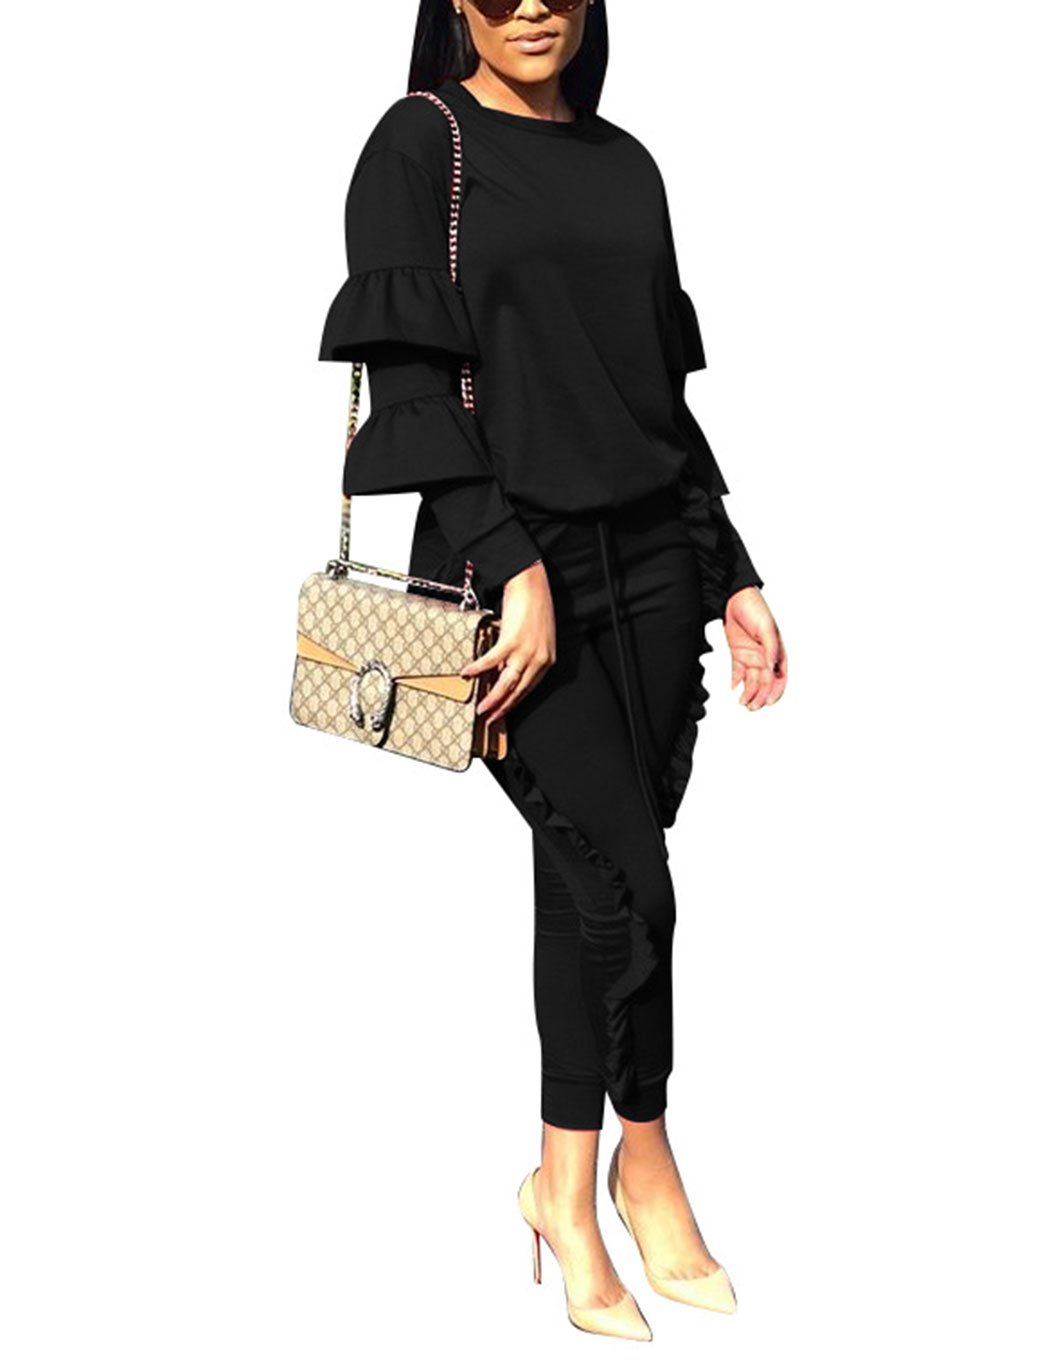 Women 2 Pieces Outfits Puff Sleeve Top and Long Flounced Pants Sweatsuits Set Tracksuits Black XX-Large